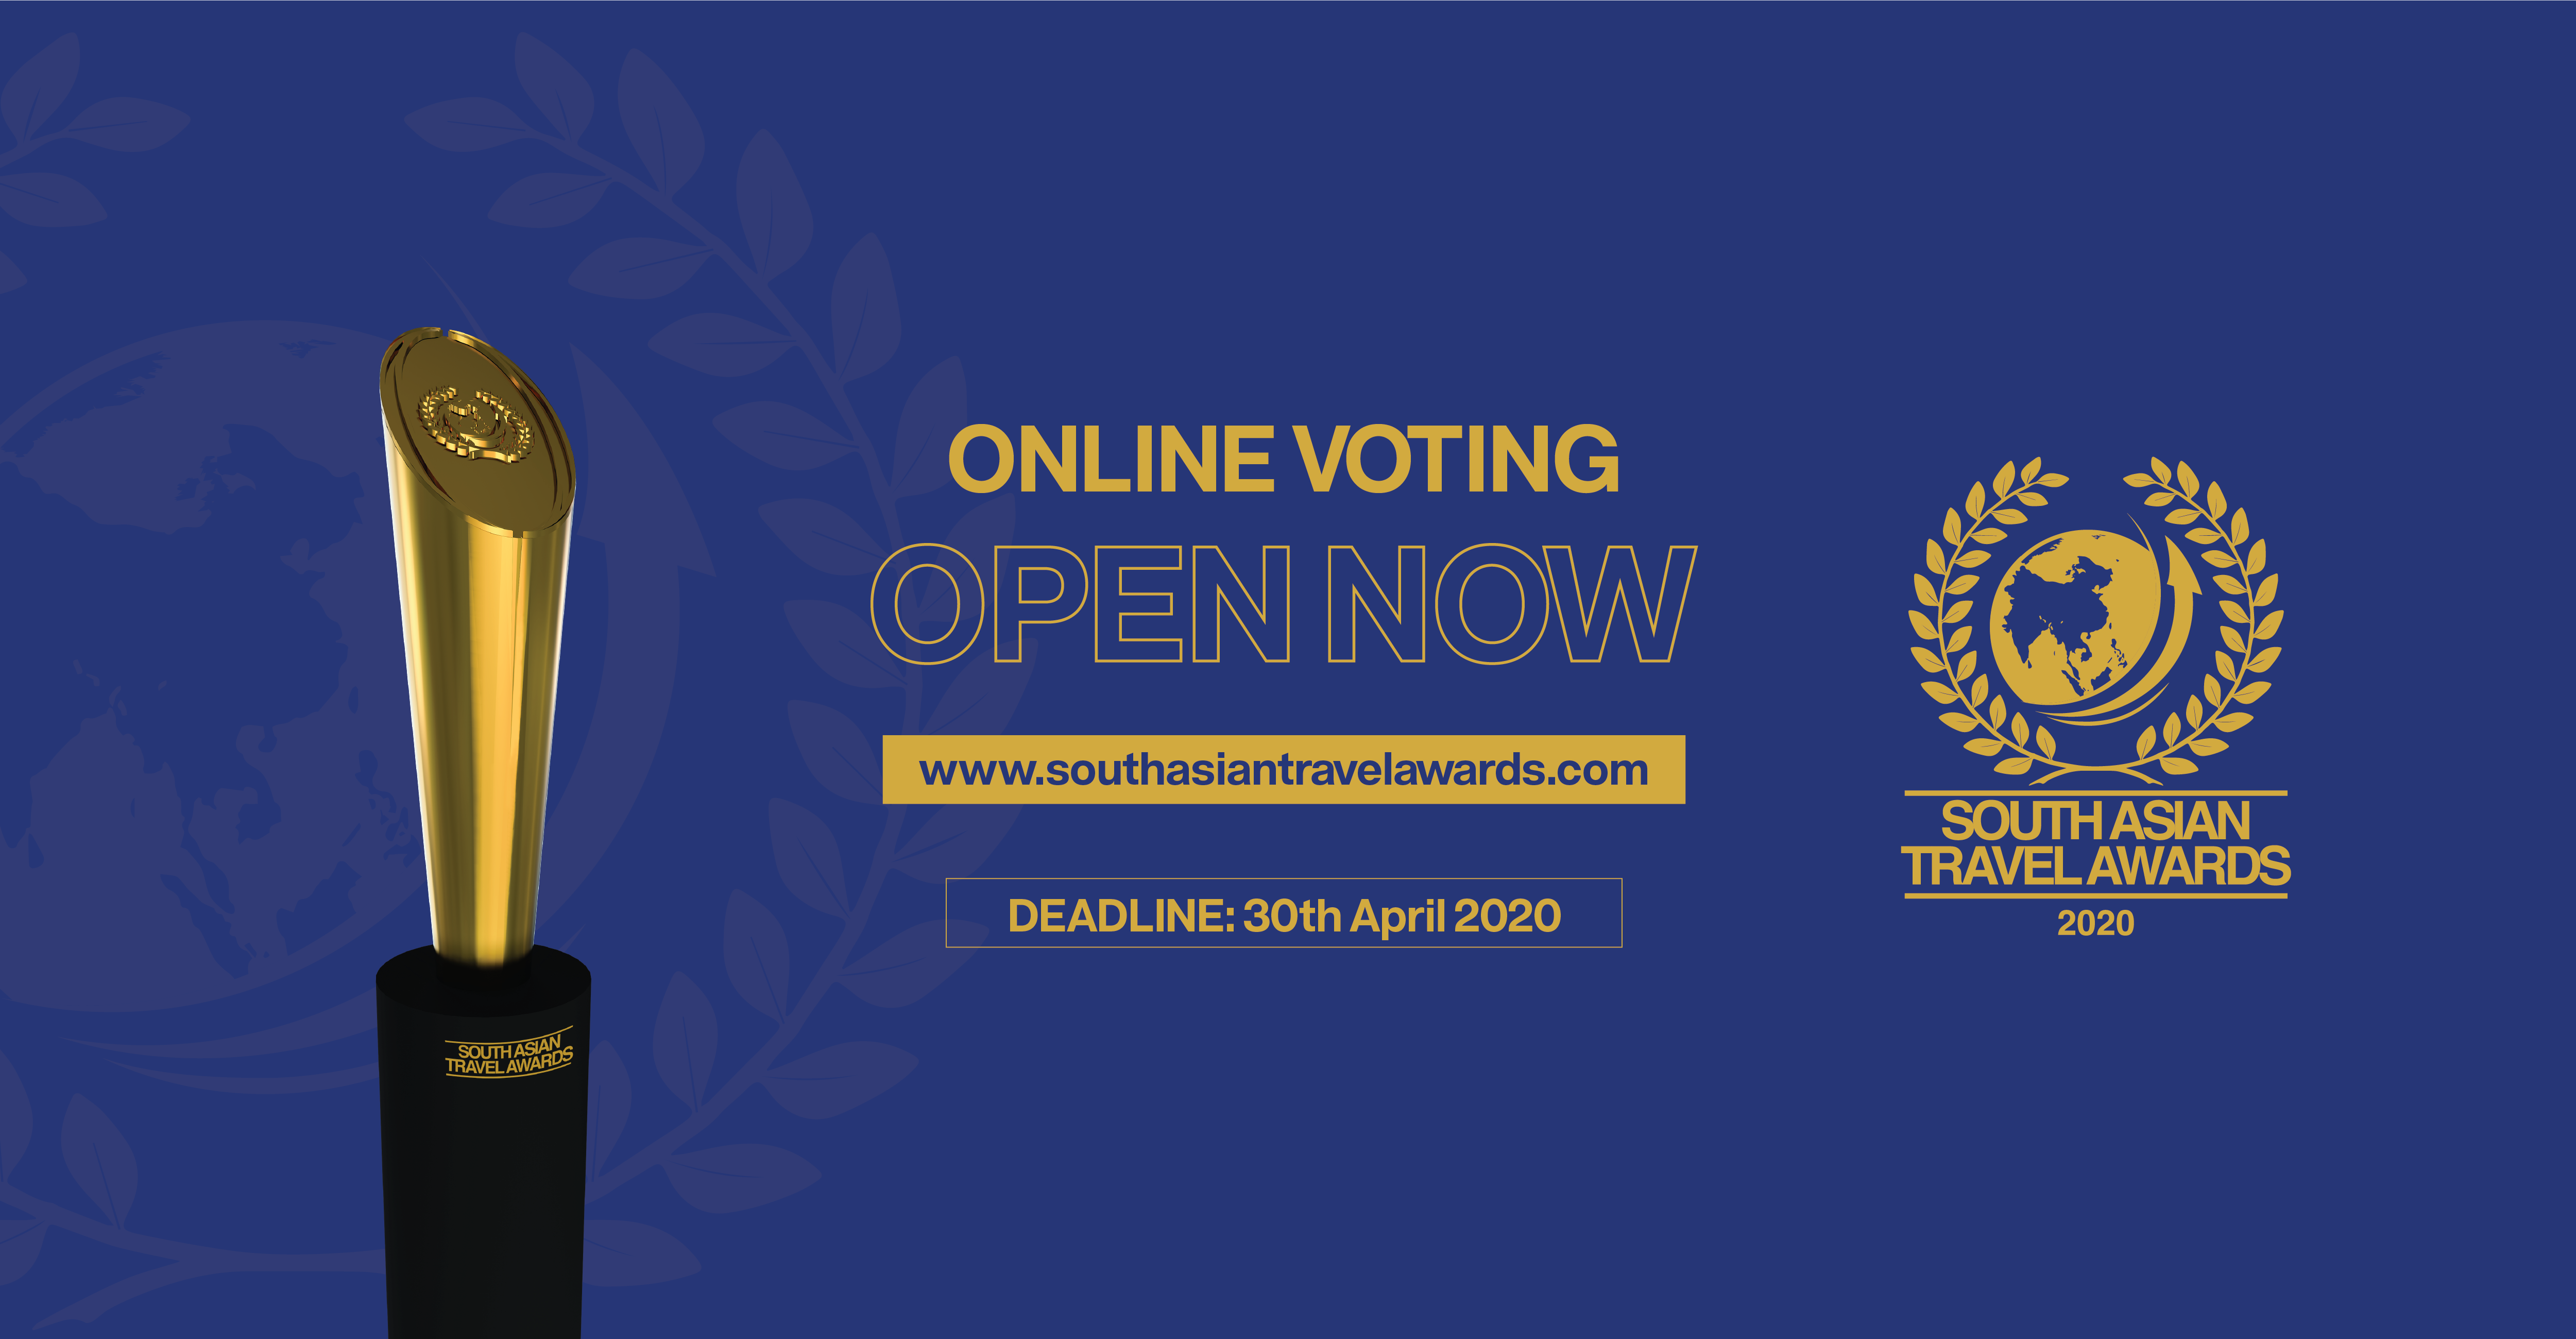 Online Voting now open for South Asian Travel Awards 2020